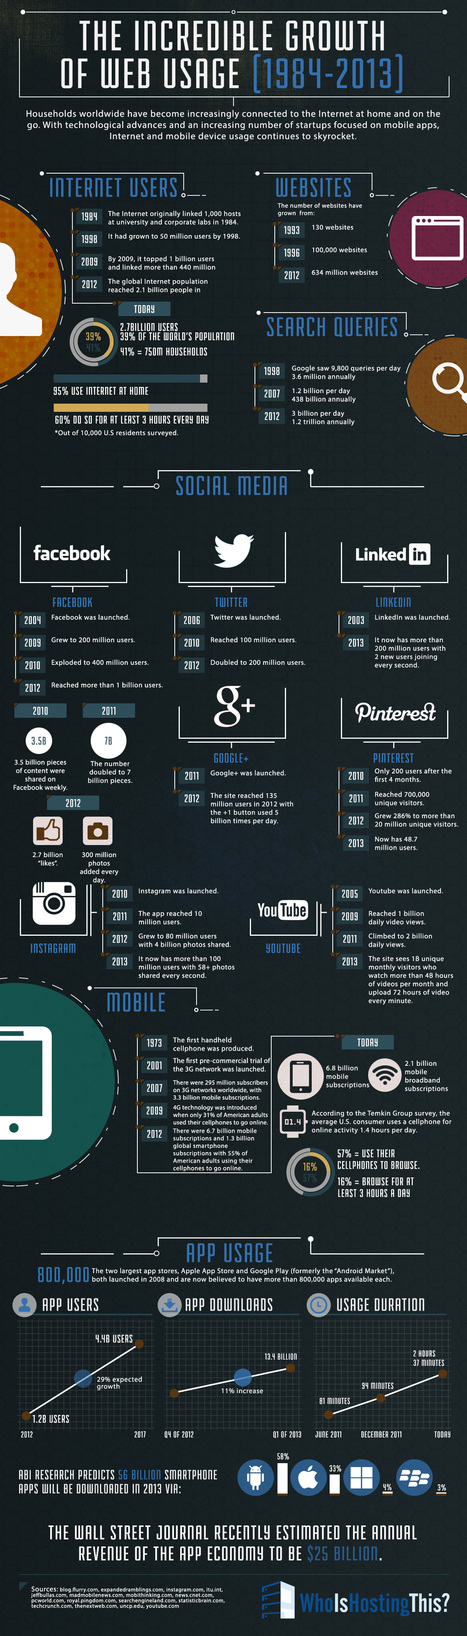 Infographic: The Incredible Growth of Web Usage [1984-2013] | JOIN SCOOP.IT AND FOLLOW ME ON SCOOP.IT | Scoop.it